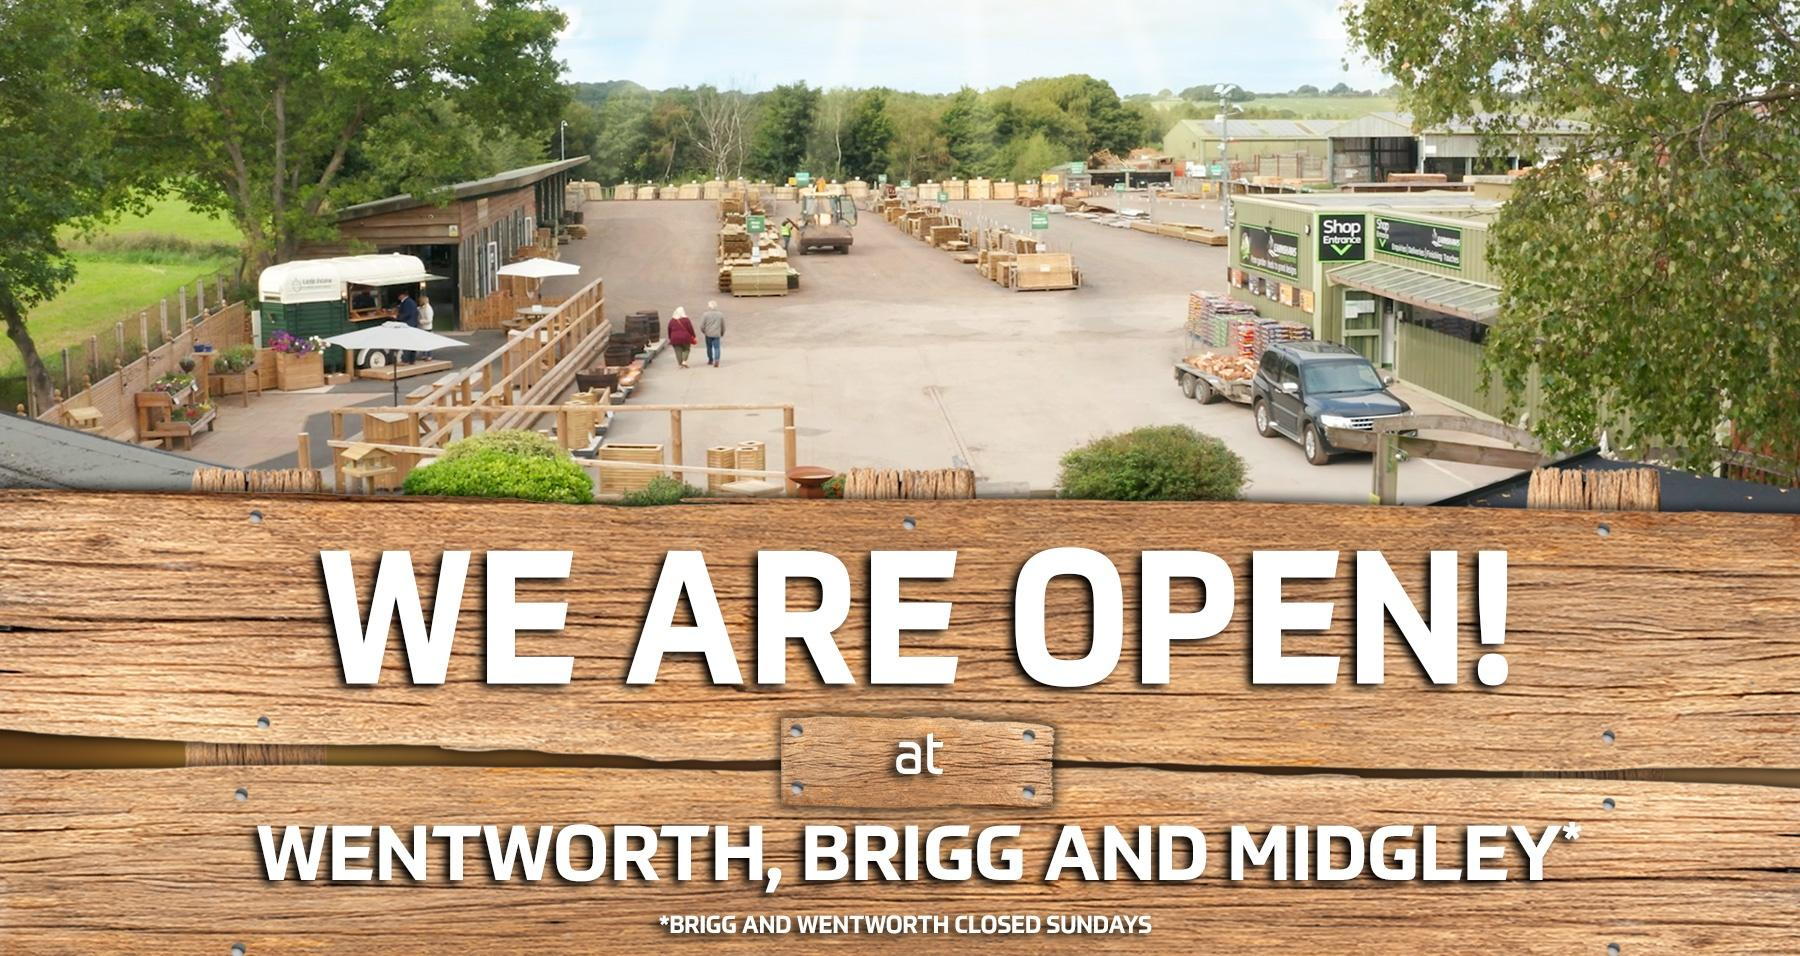 We are open at Wentworth, Brigg and Midgley